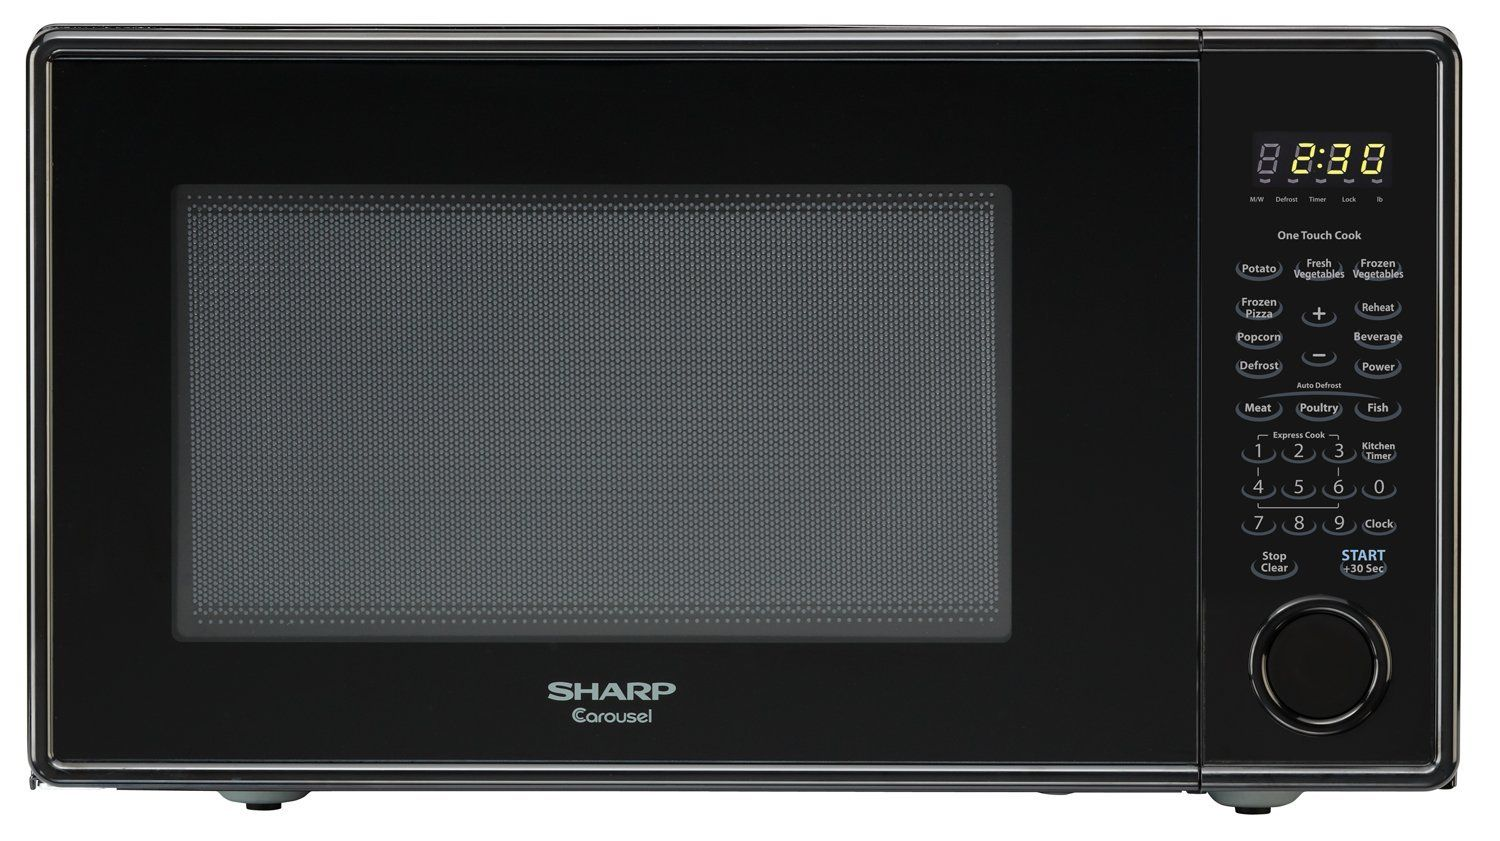 Sharp Countertop Microwave Oven Zr309yk 1 1 Cu Ft 1000w Black